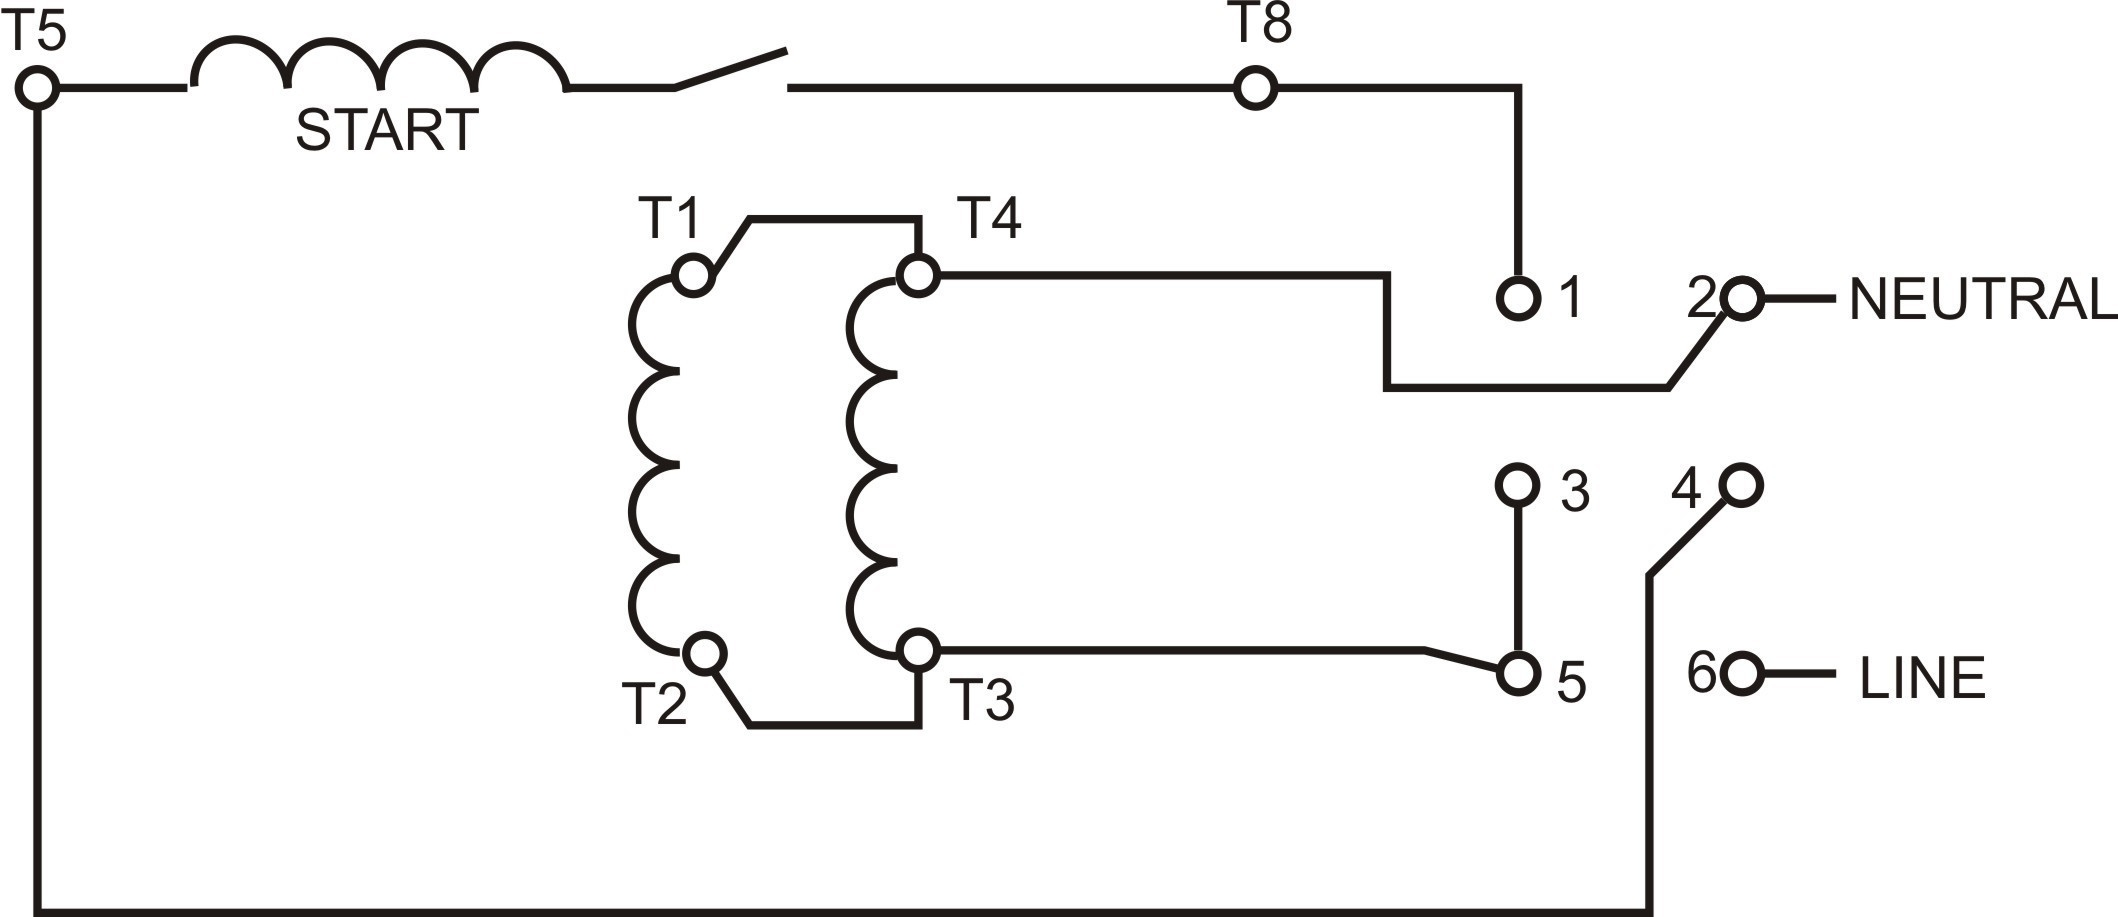 3 Phase To Single Phase Wiring